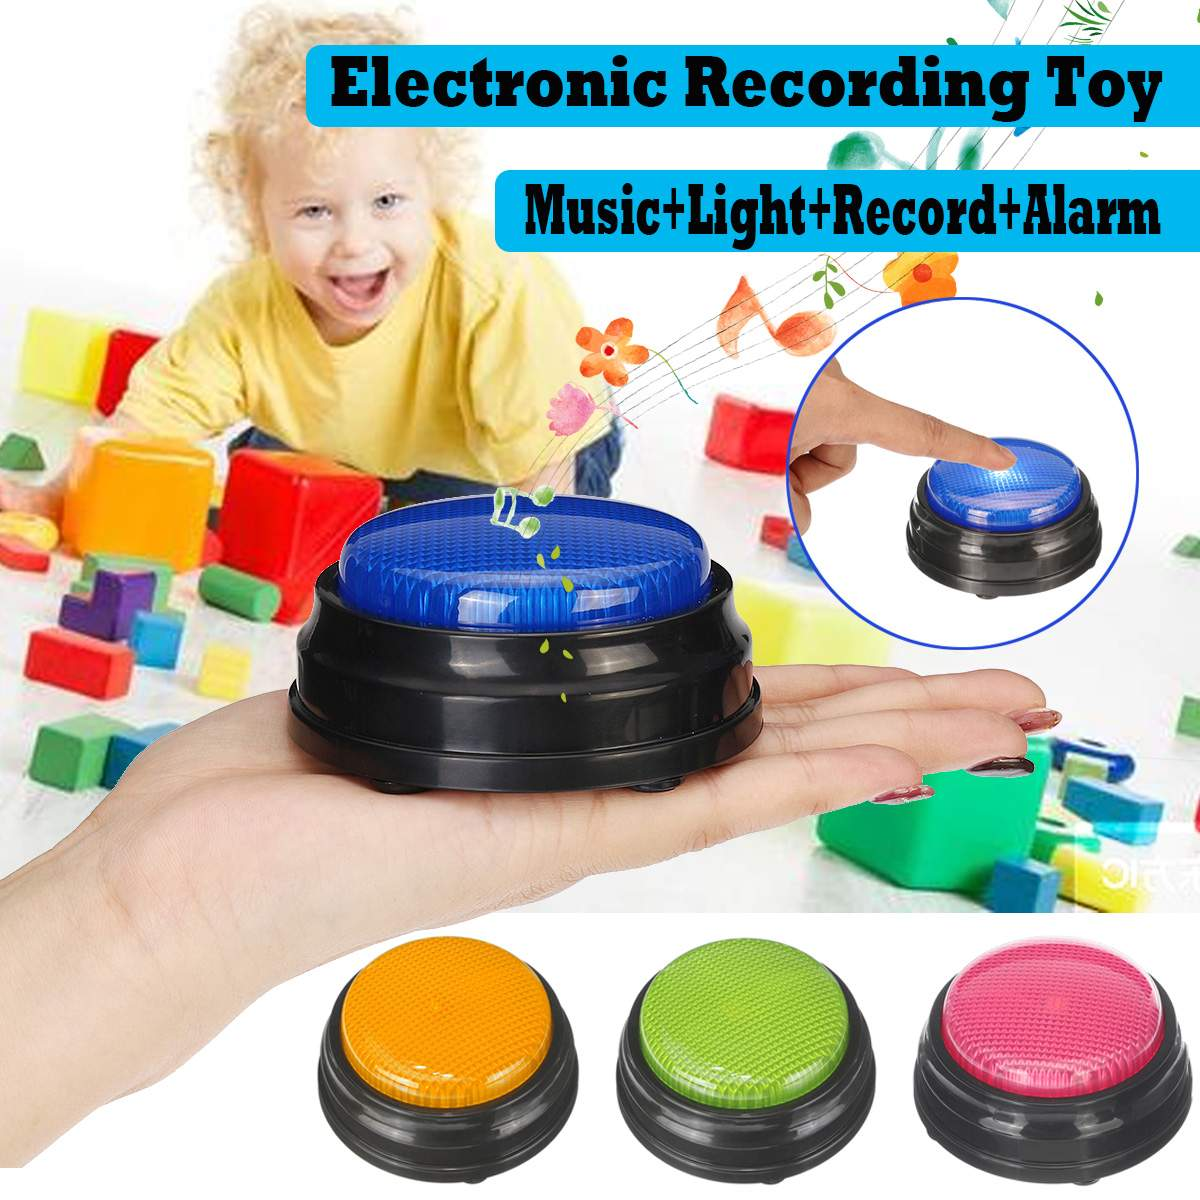 Press Recording Button Buzzer Sound Button Can Record Sound Or Music Kids Children Toy Gifts